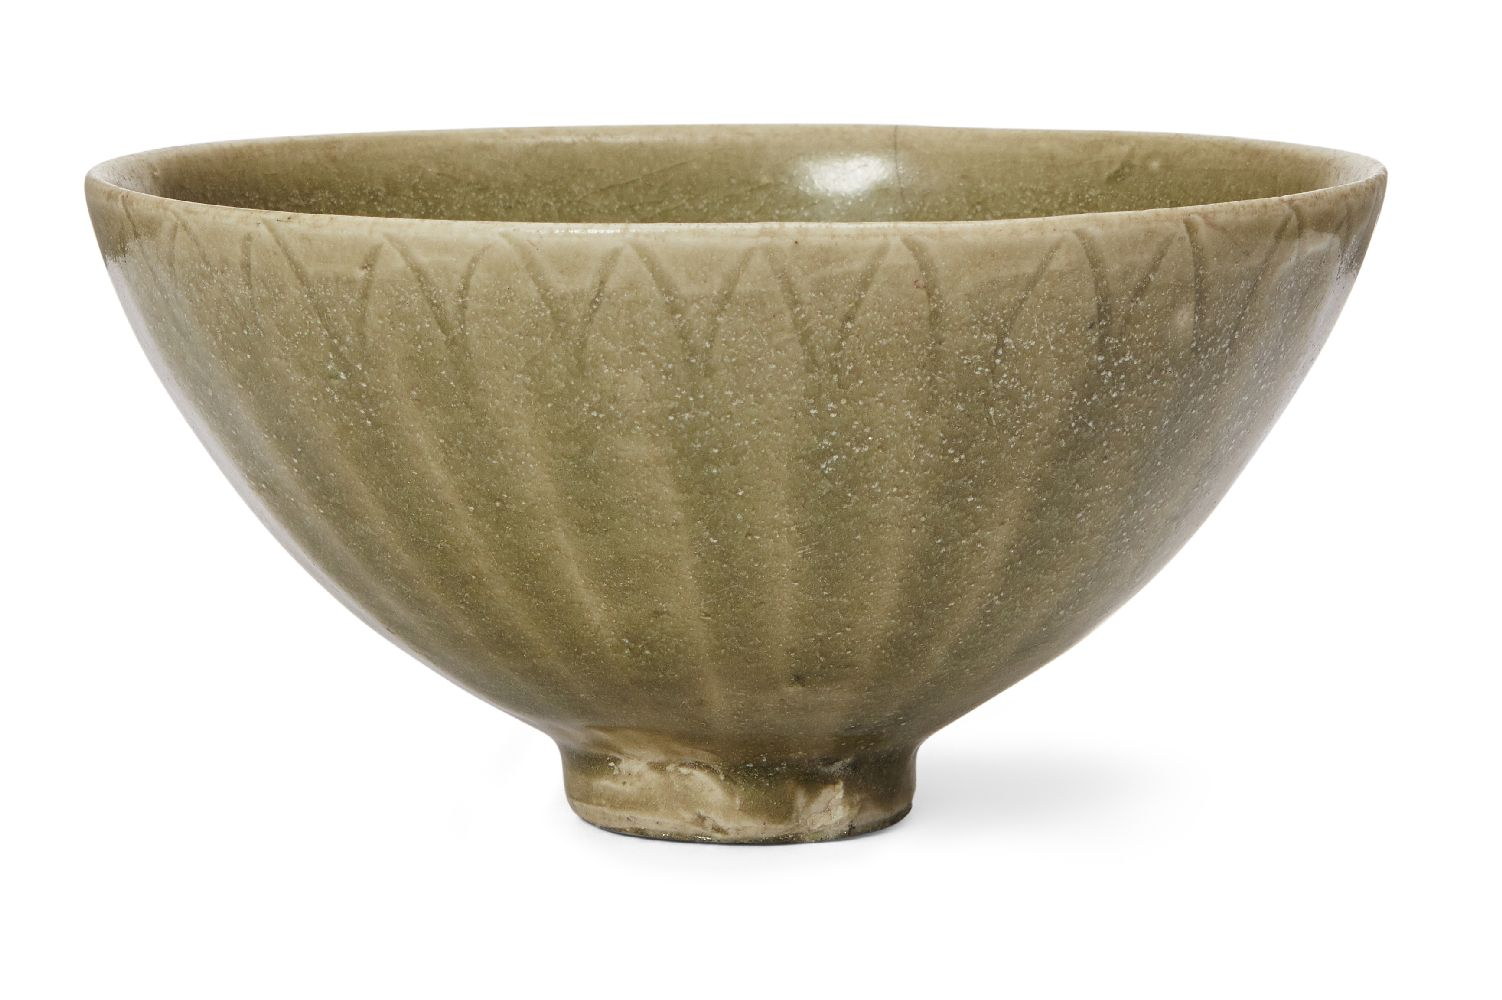 A grey stoneware celadon glazed moulded bowl, 15th/16th century, moulded to the exterior with